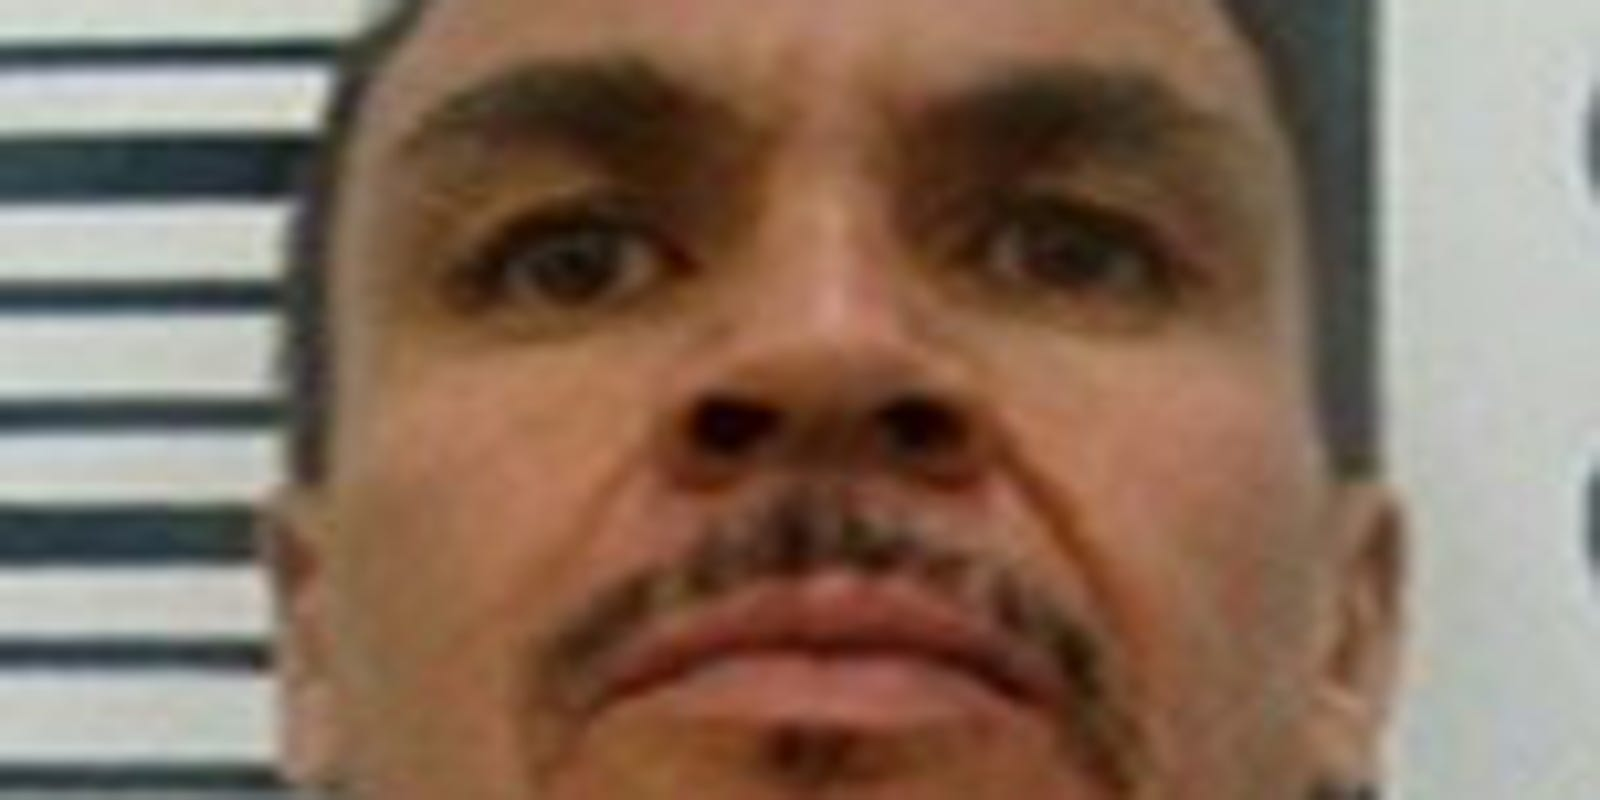 Ana Marco doña ana county man among most-wanted dwi absconders